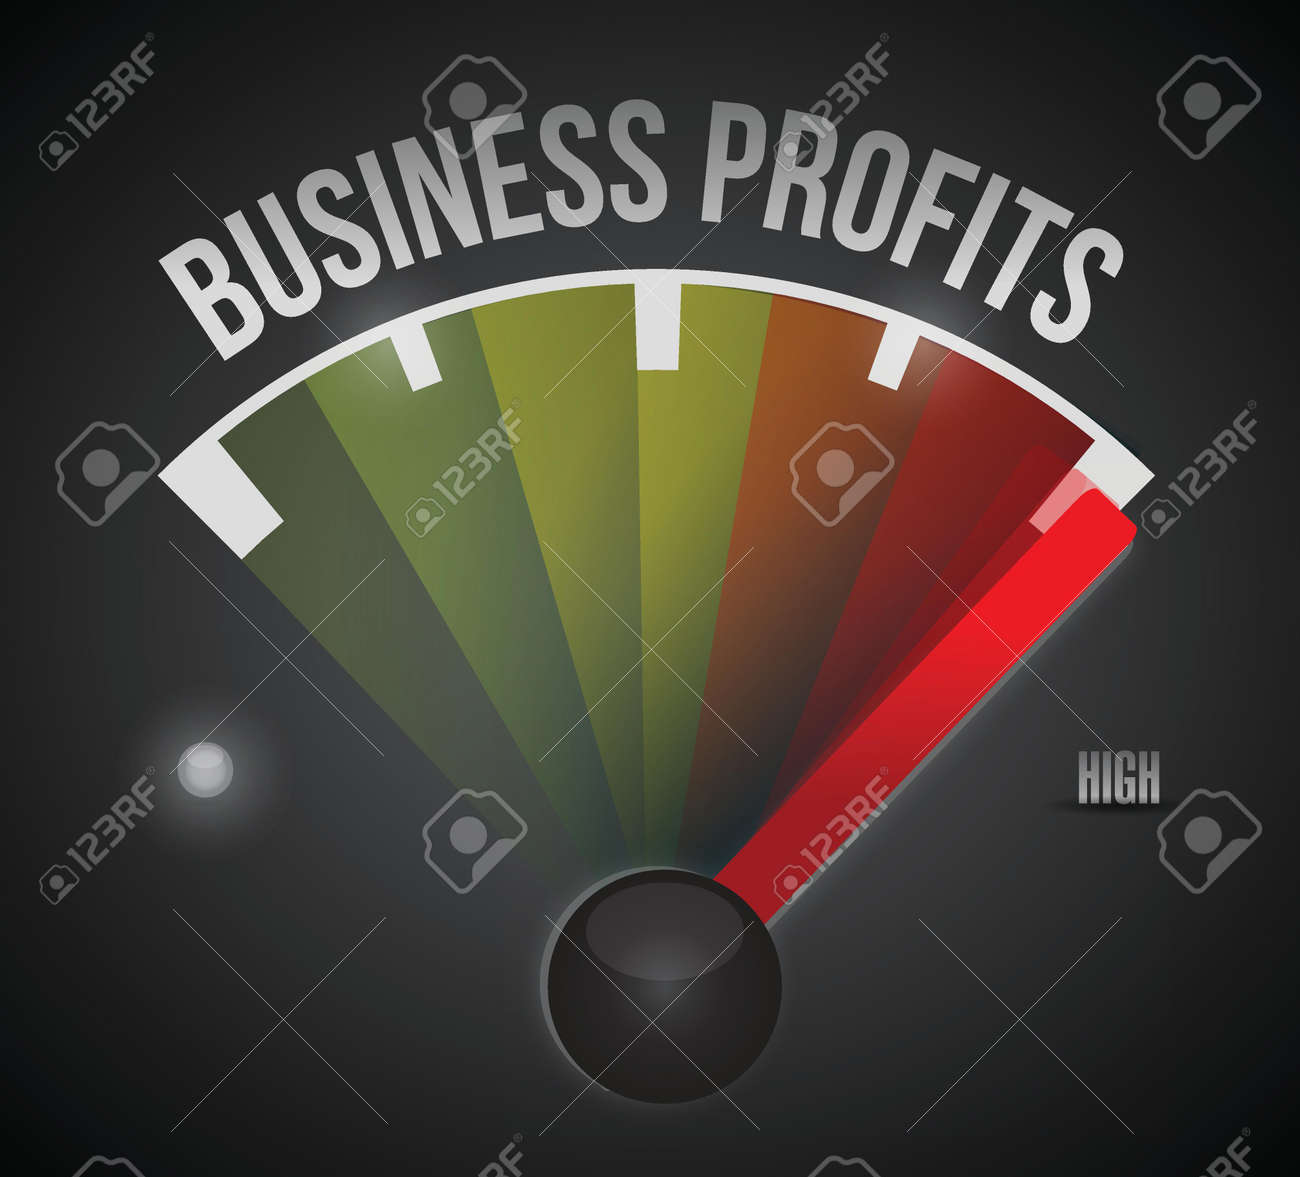 business profit level measure meter from low to high, concept illustration design Stock Vector - 22753169